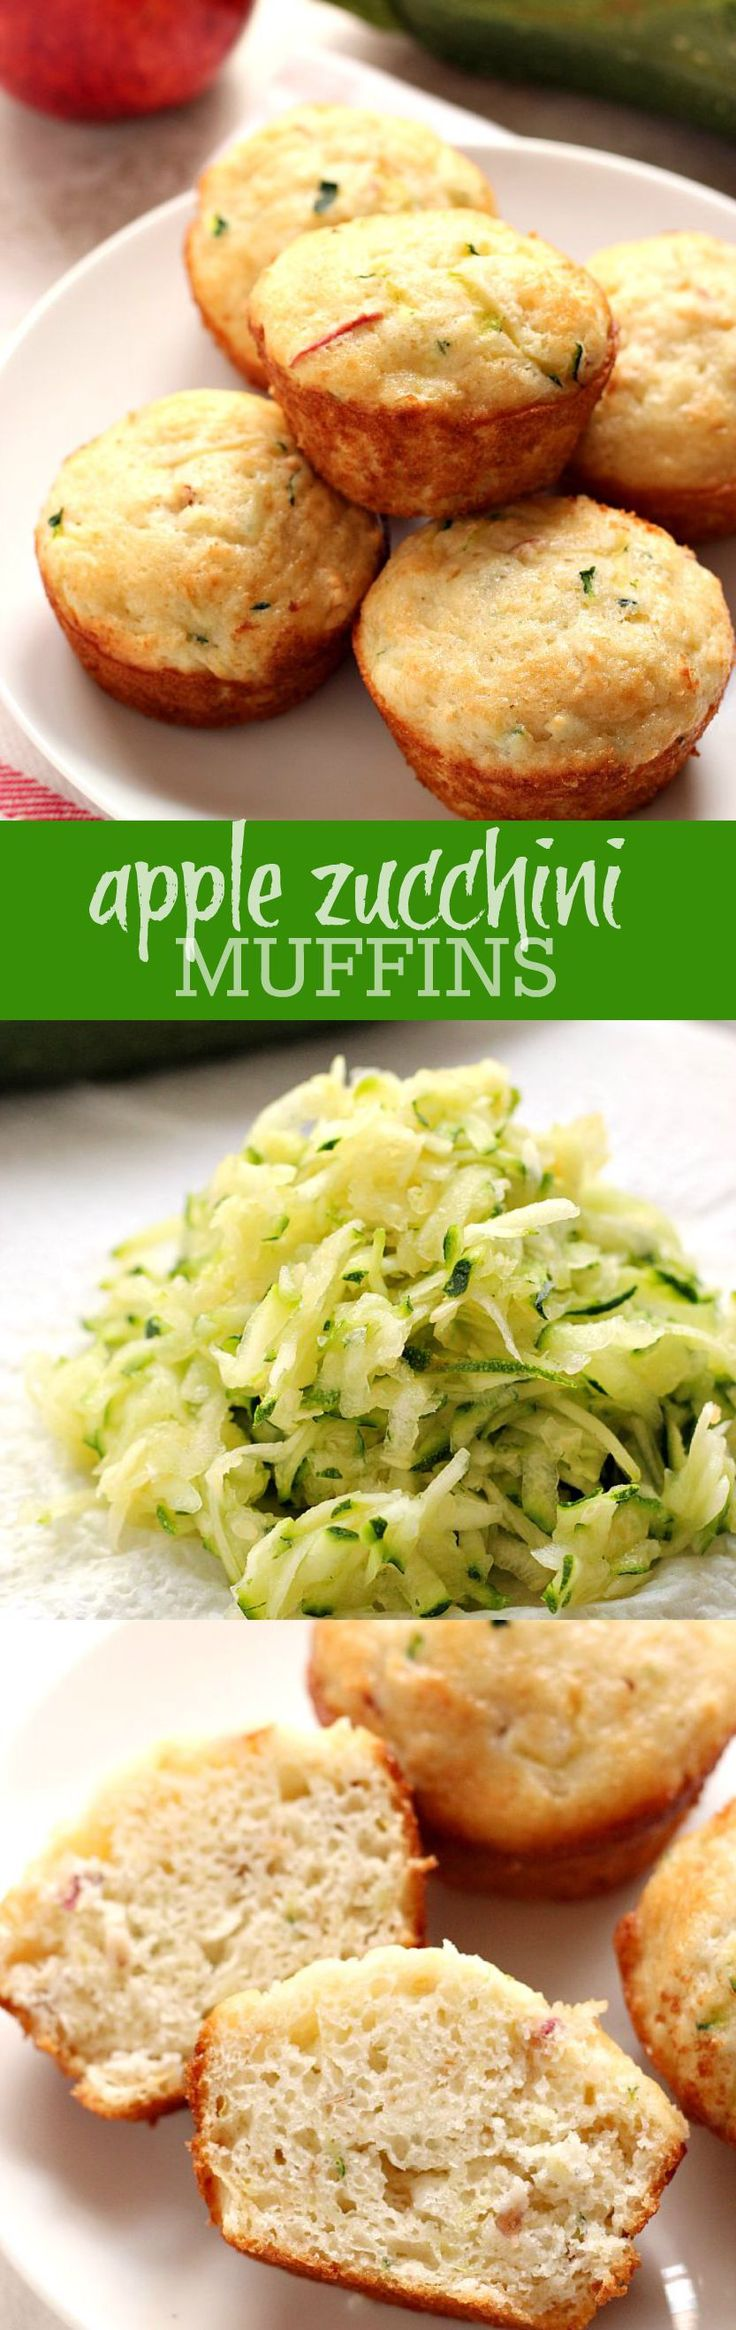 Apple Zucchini Muffins - soft and fluffy muffins with zucchini and apple. Perfect for lunch boxes or as an after-school snack! |